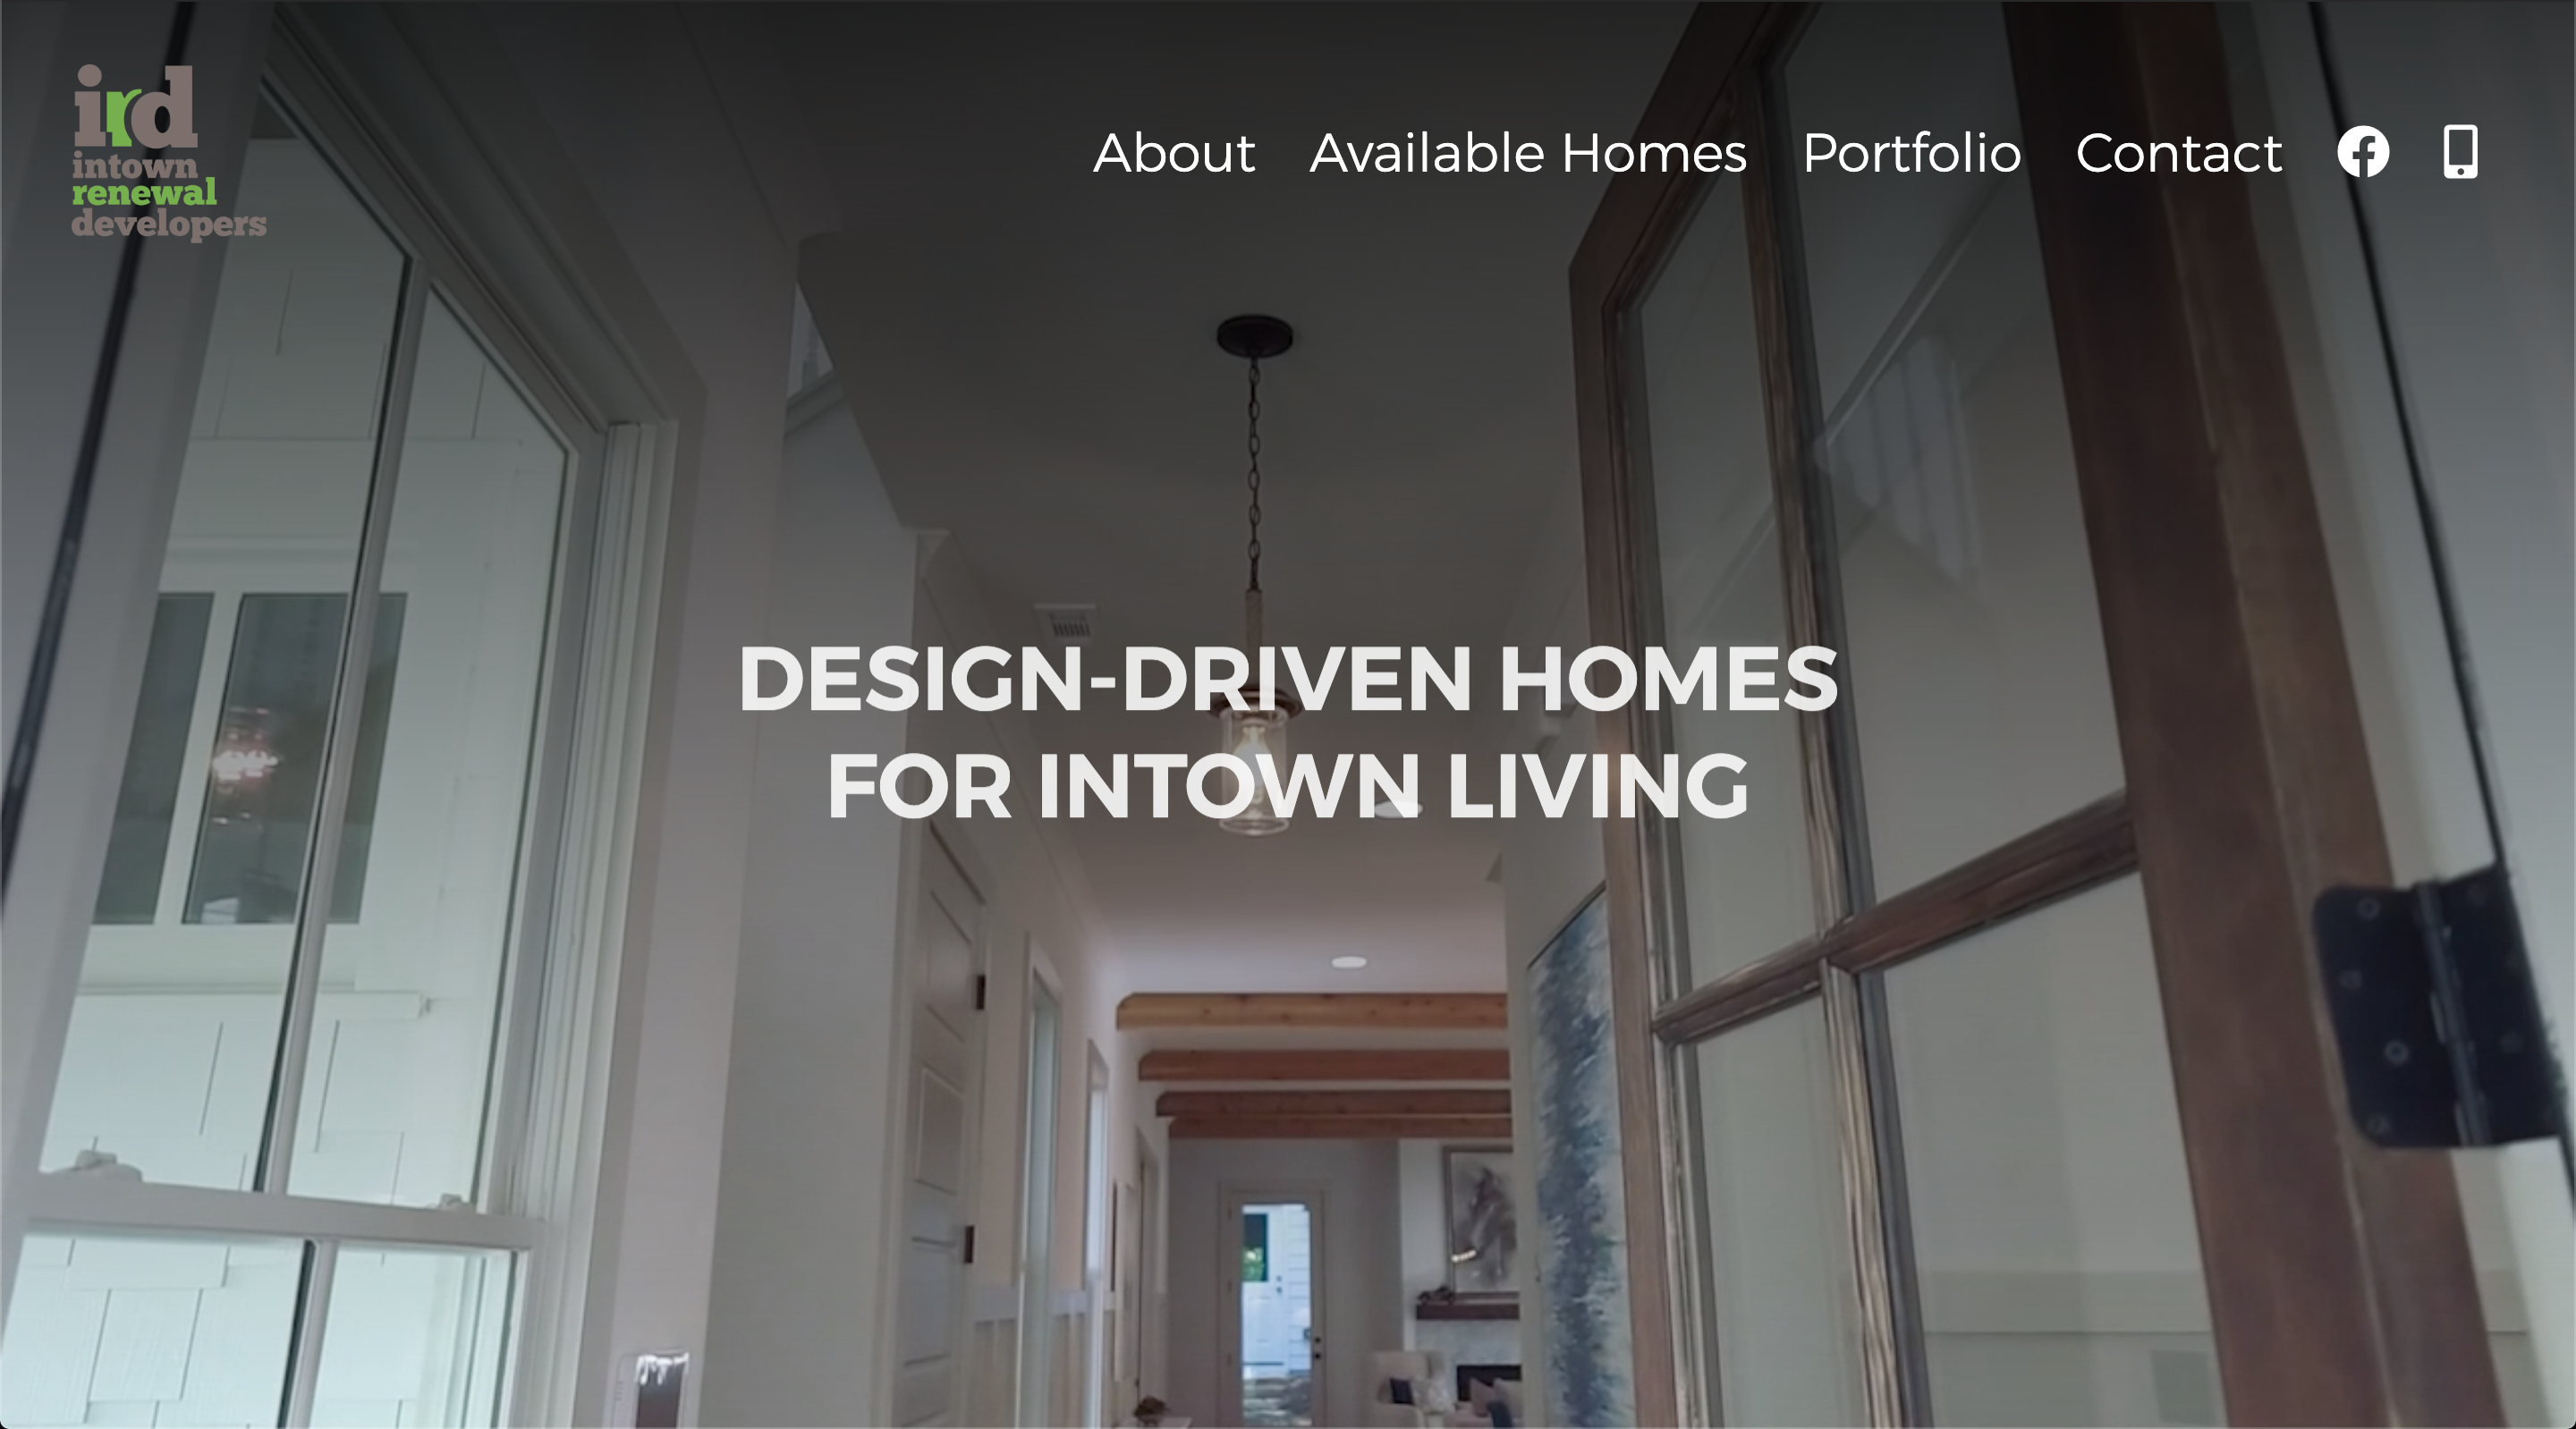 Intown Developers custom WordPress website